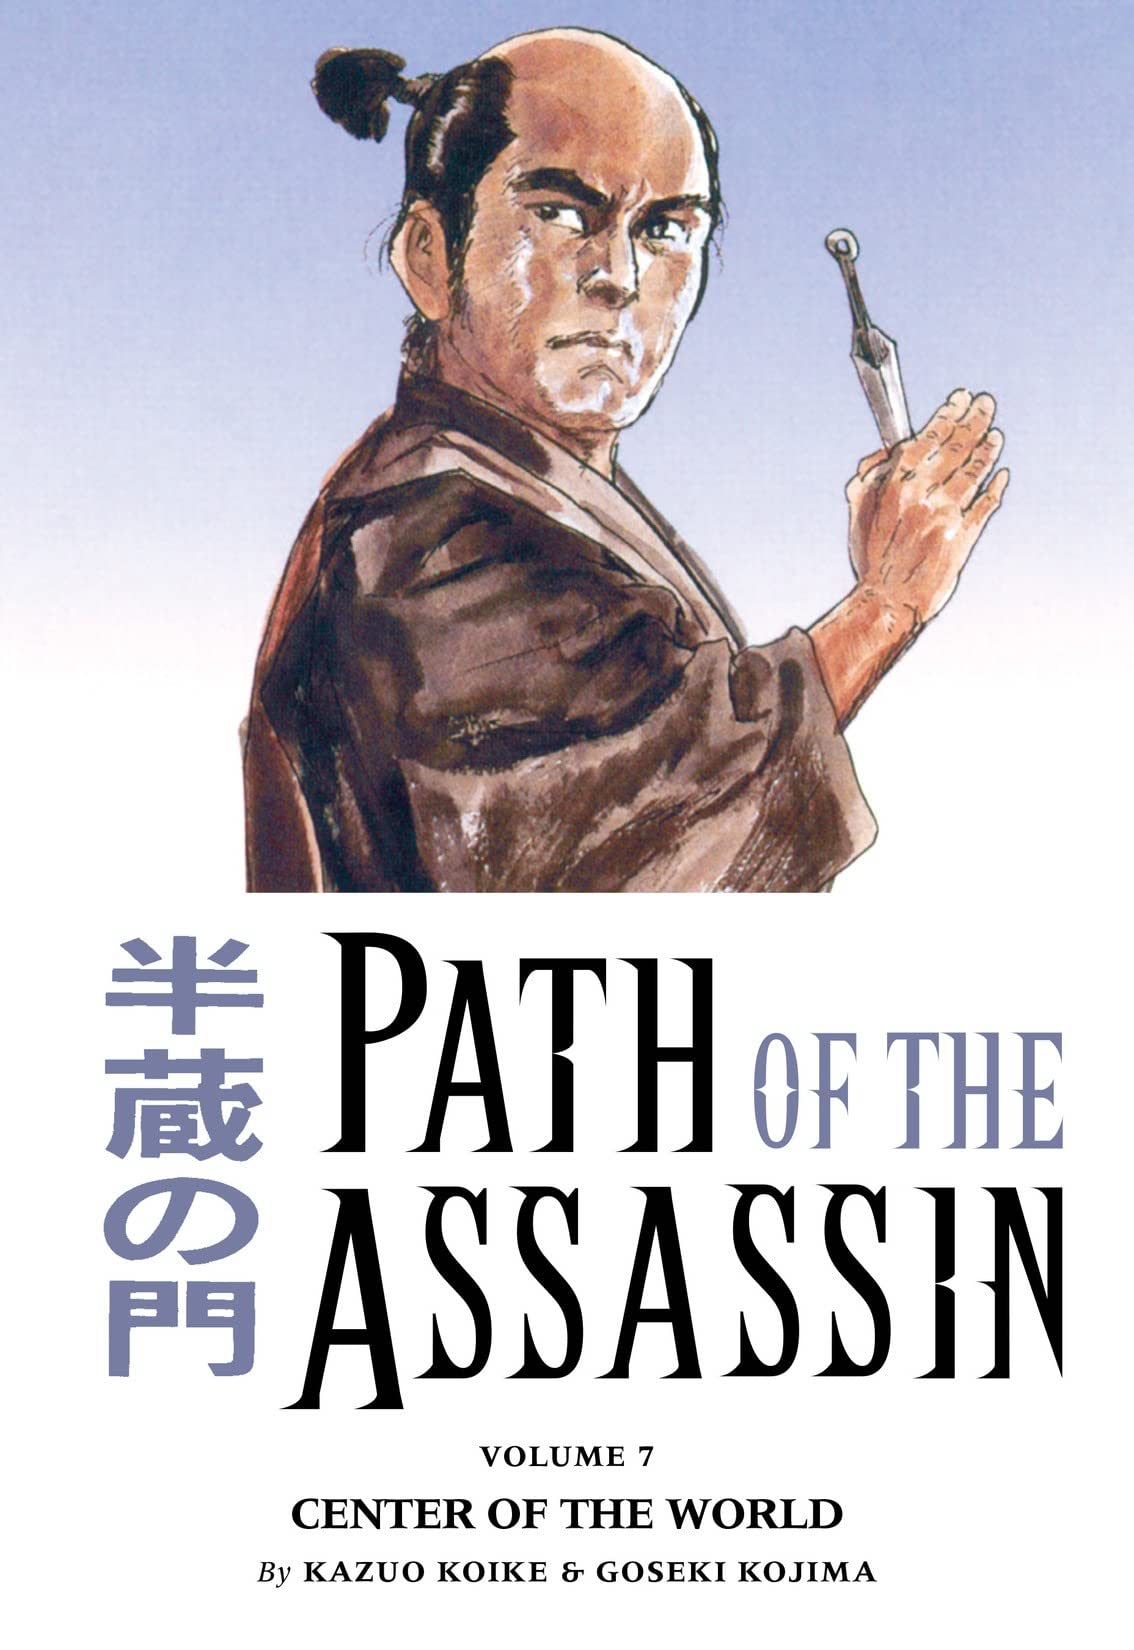 Path of the Assassin Vol. 7: Center of the World